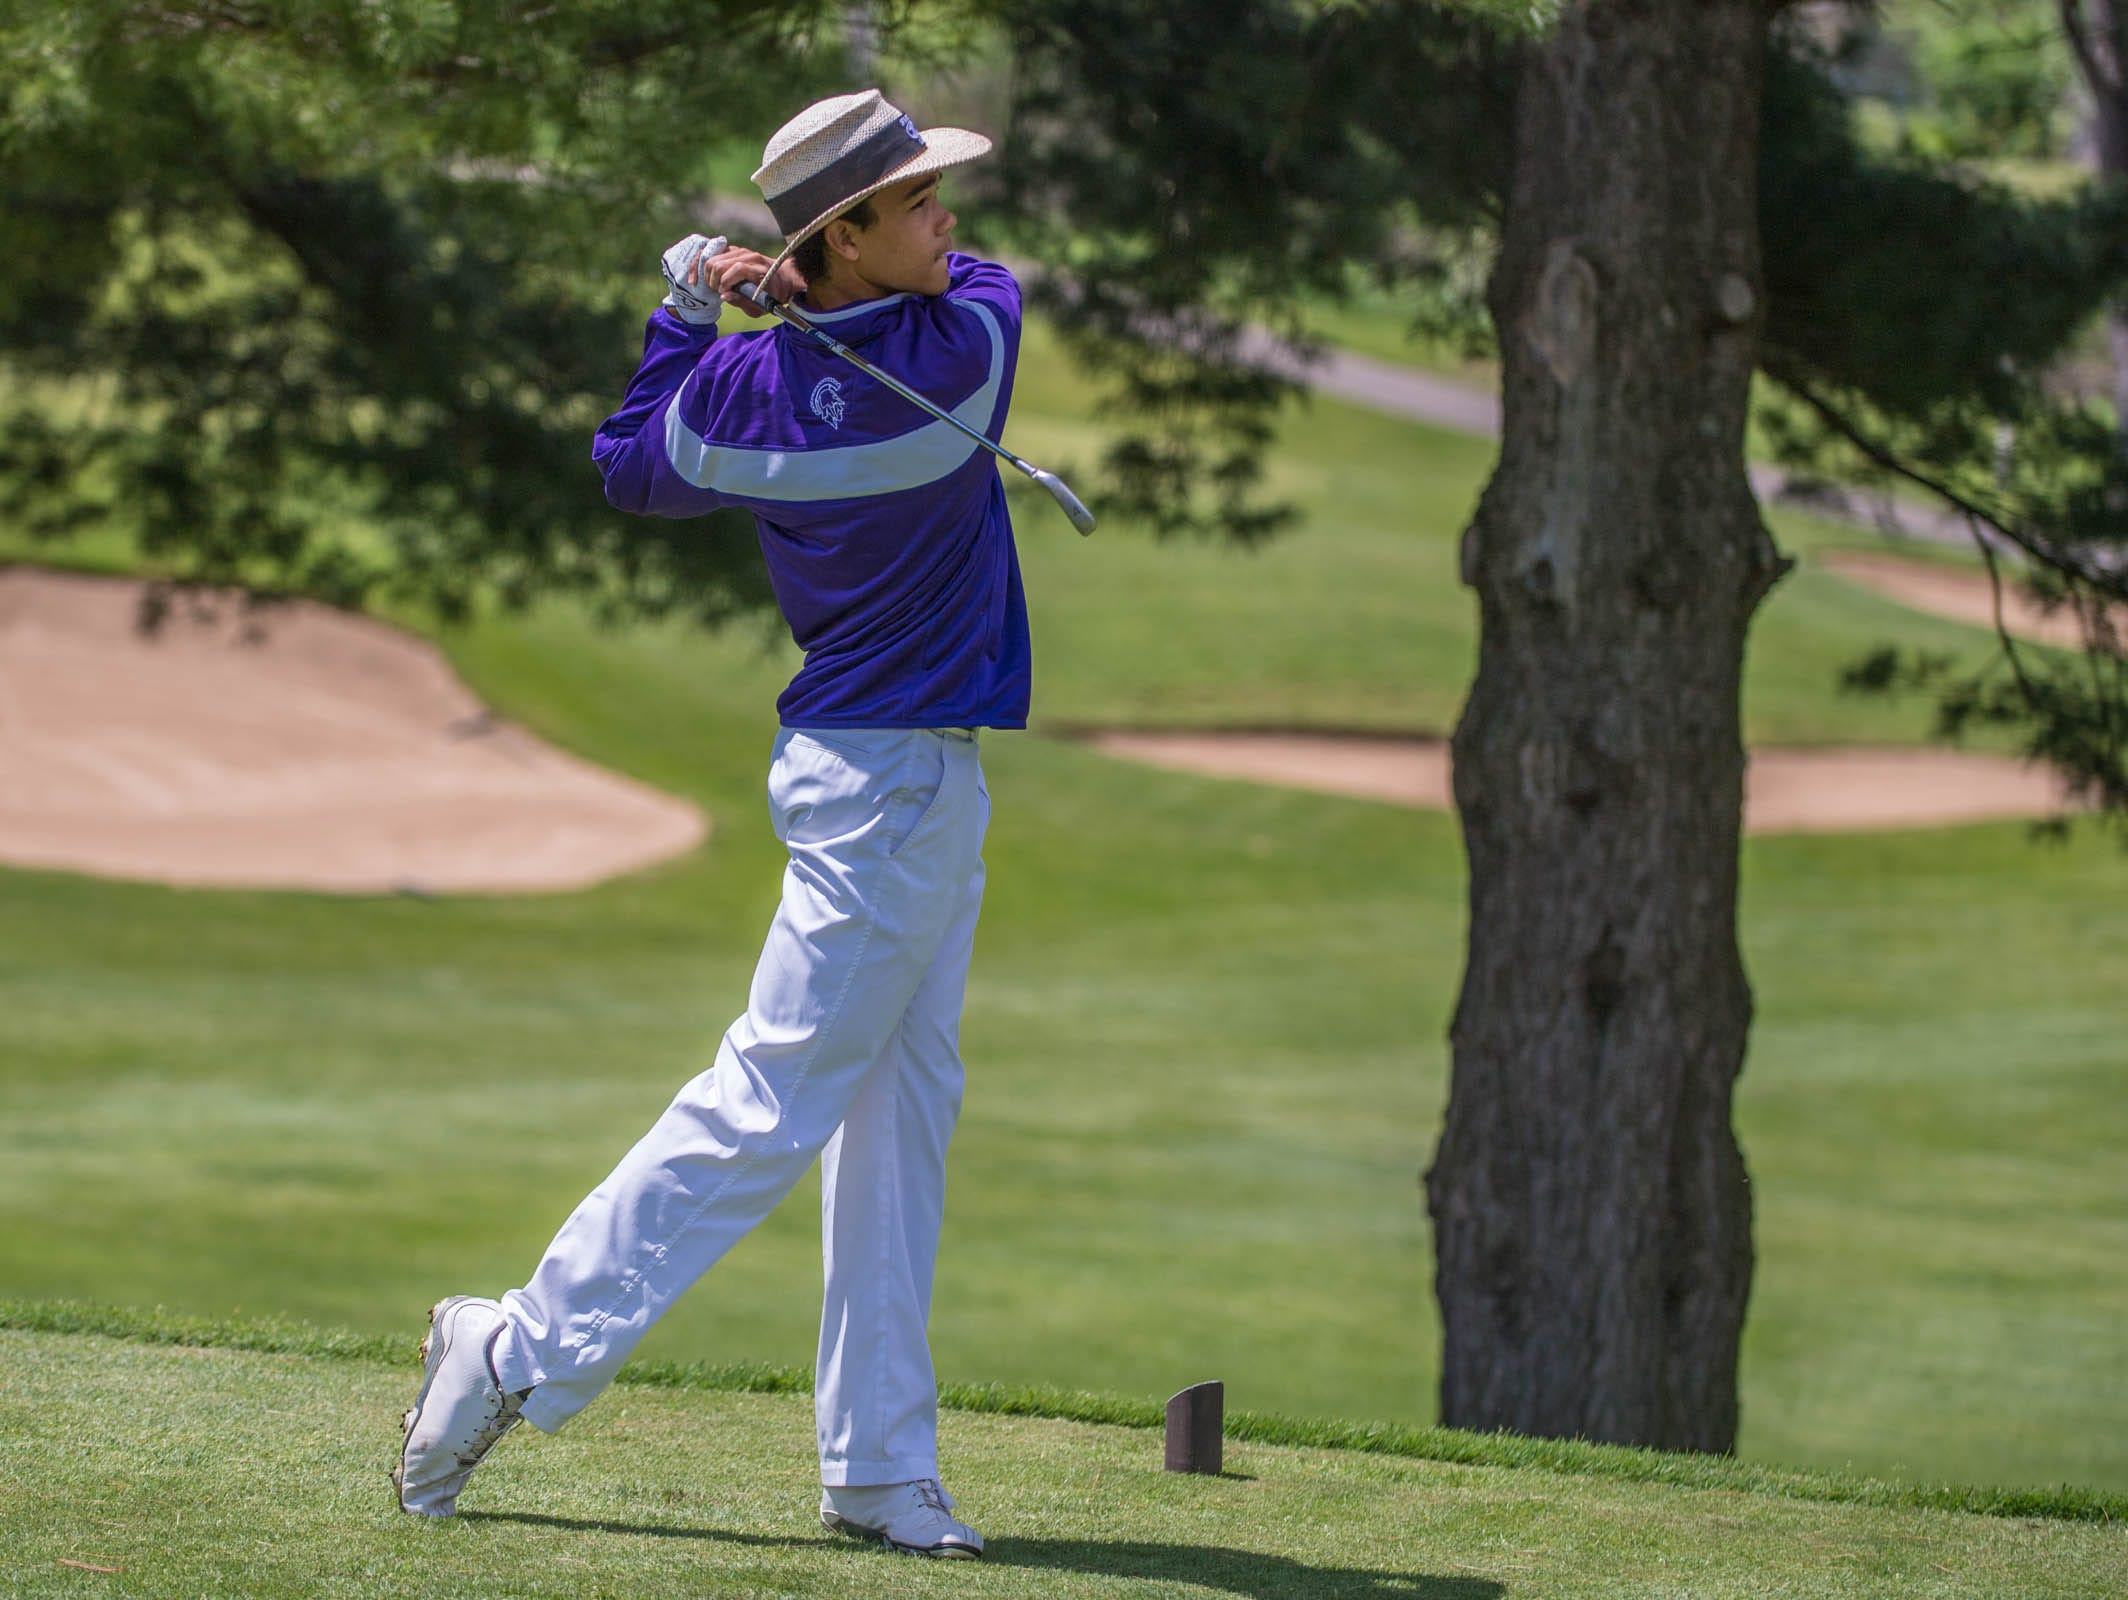 Lakeview's Andrew Walker hits his drive during All-City Golf Tournament at Riverside Golf Club on Friday.